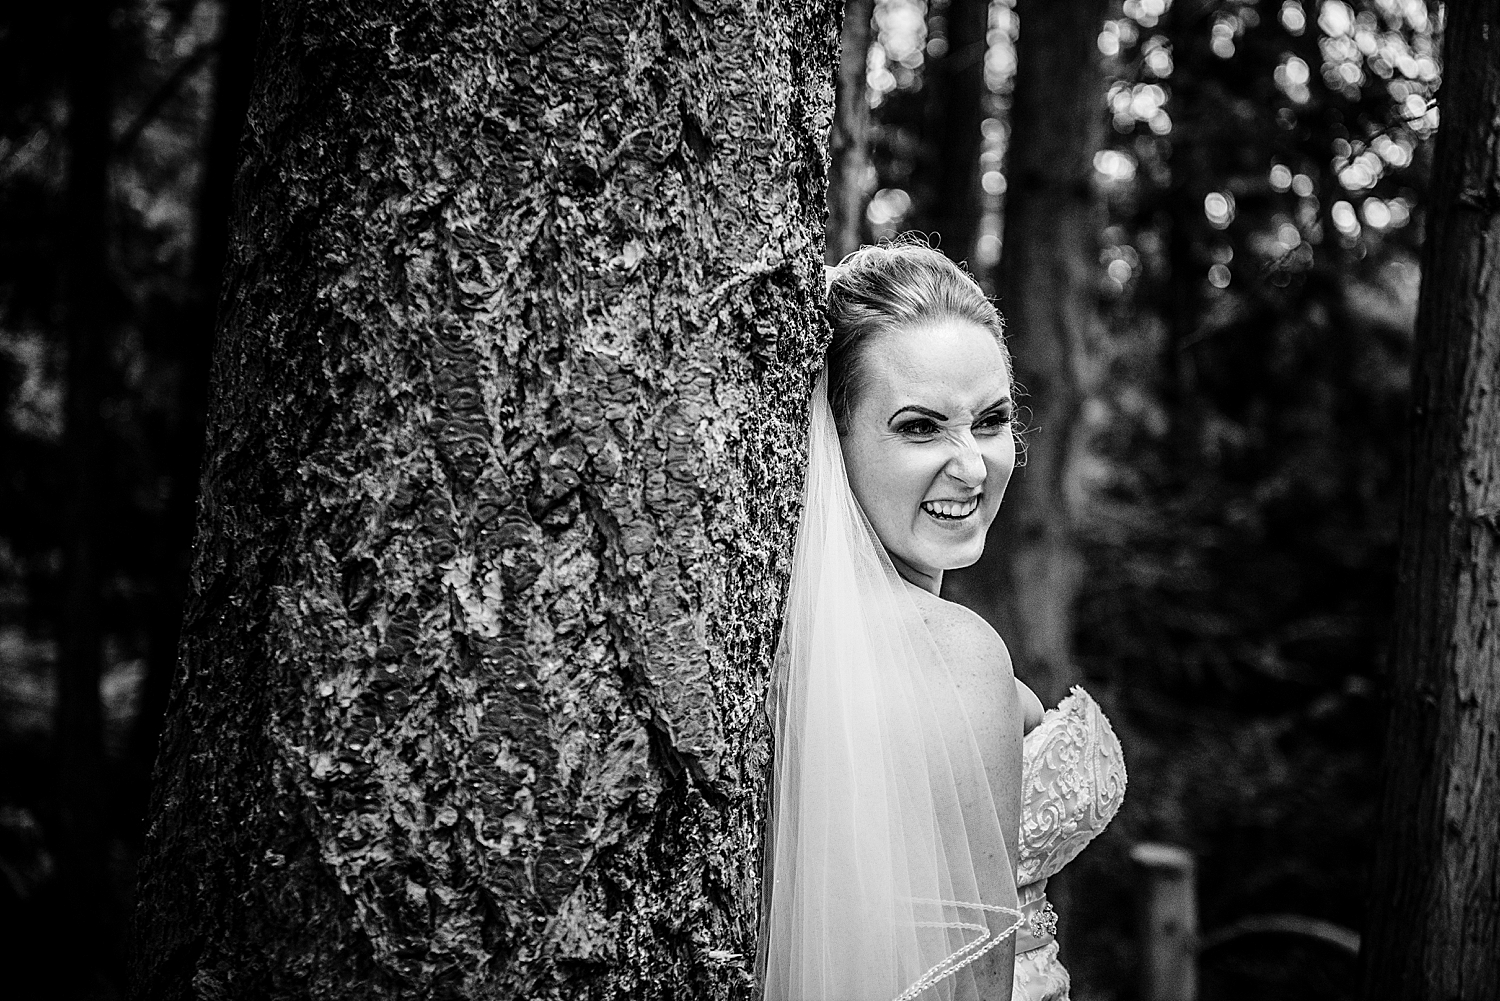 B.C. Canada wedding photographer,Bride walking down orchard,British Columbia Wedding photographer,Kelowna wedding photographer,Saanichton Wedding photographer,Sea Cider Farm & Ciderhouse,Vancouver wedding photographer,Vernon Wedding photographer,Victoria Wedding photographer,forest wedding,okanagan wedding photographer,orchard wedding,small wedding photographer,wedding posing,